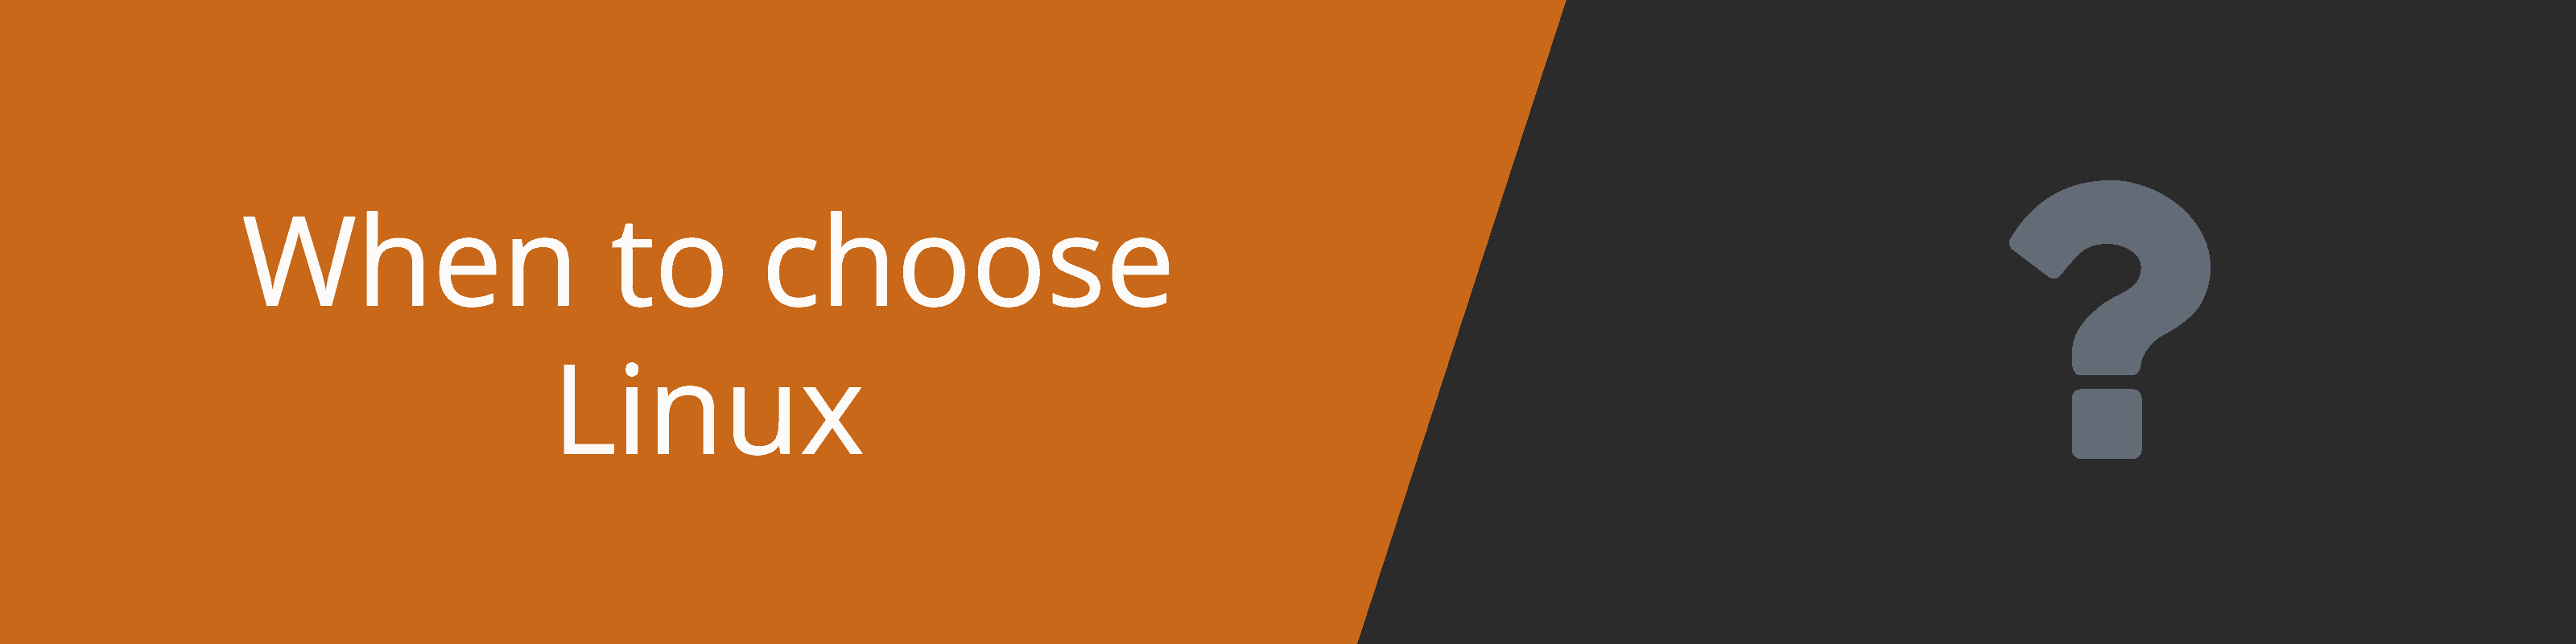 why choose linux